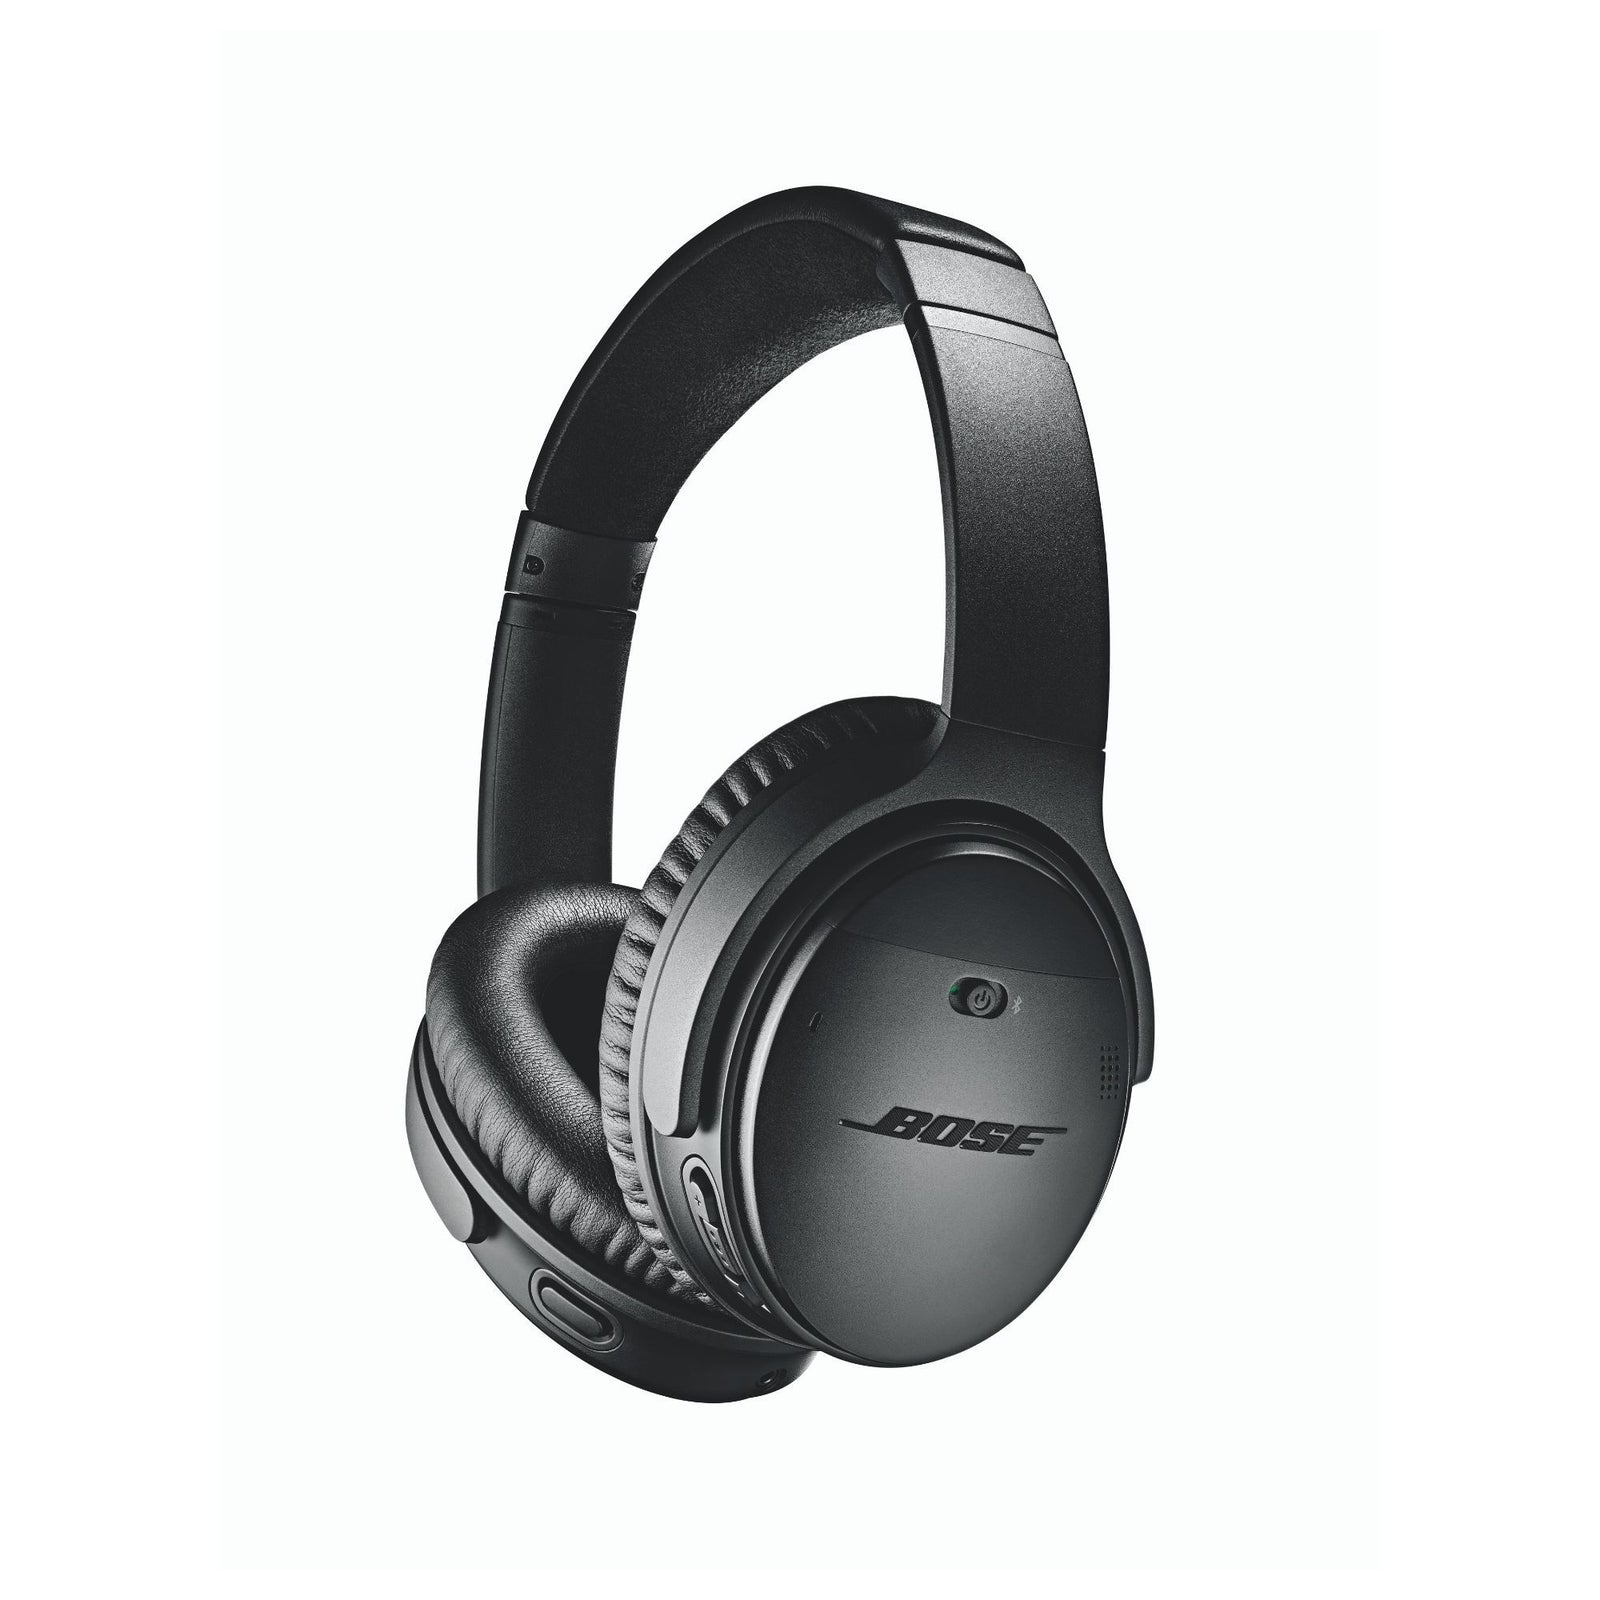 Bose Quiet Comfort 35 II Wireless Over Ear Bluetooth Headphones - Hipnosis